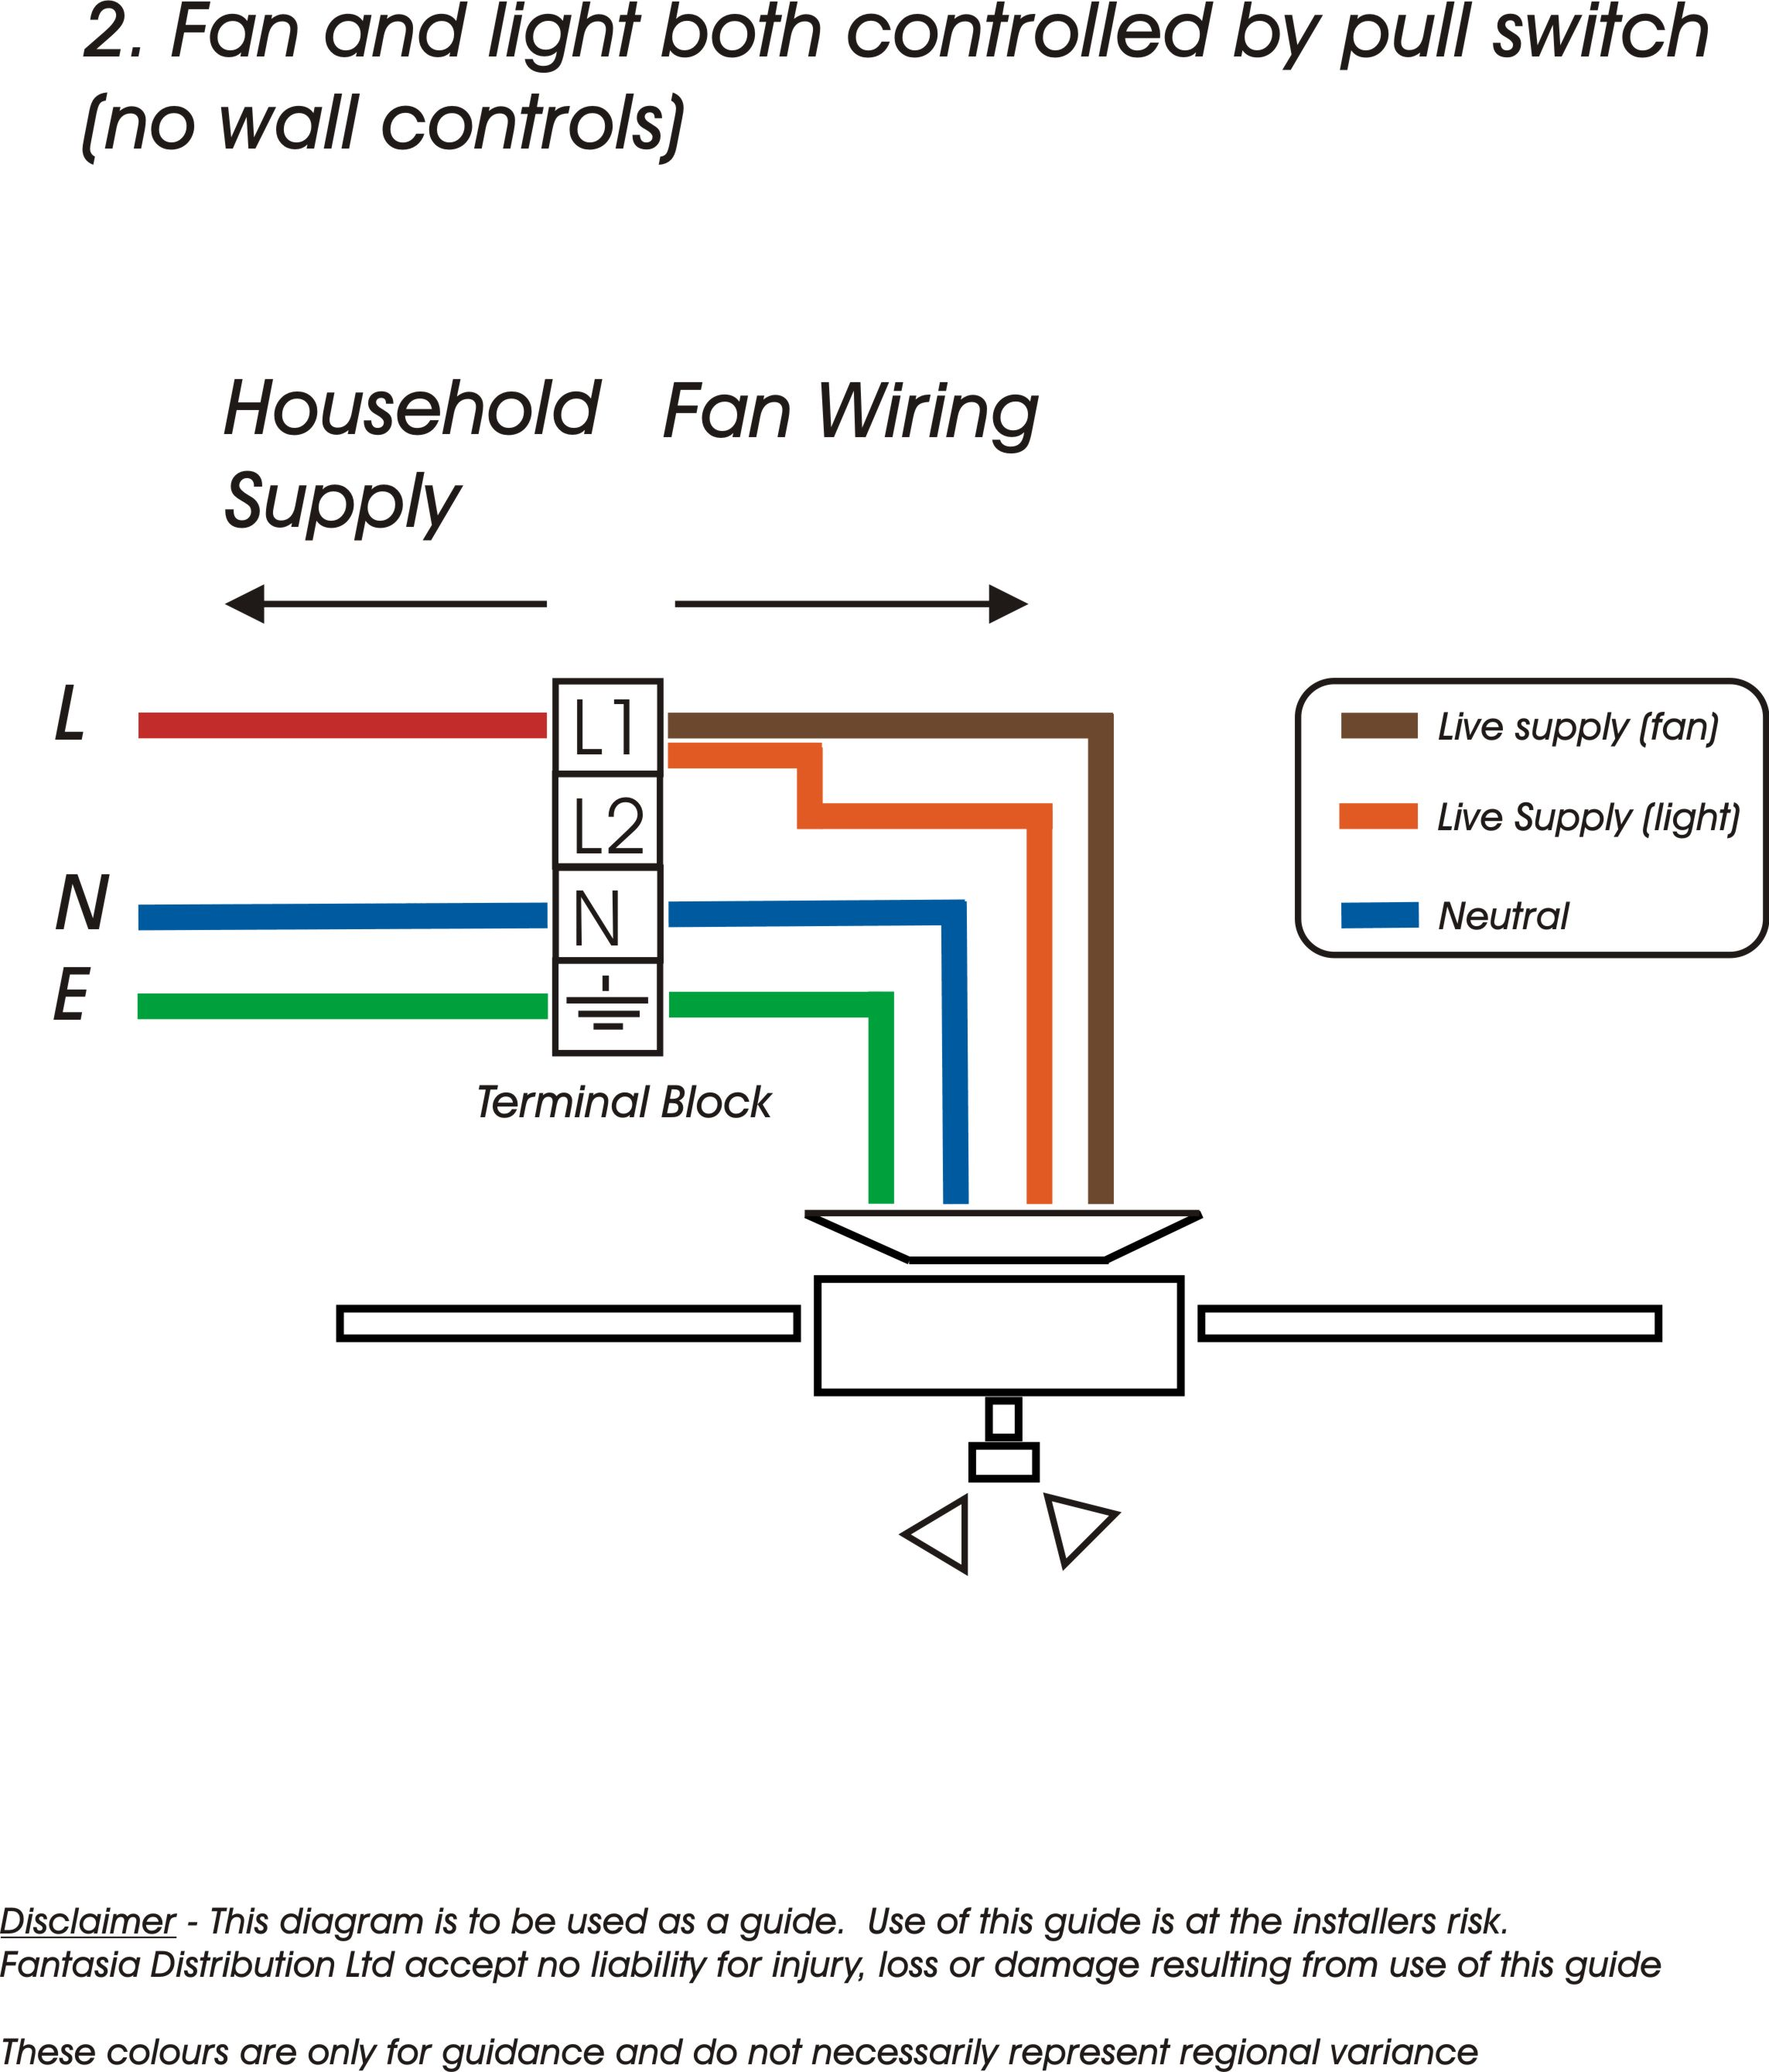 wiring ceiling fans 2 hampton bay ceiling fan motor wiring diagram integralbook com hampton bay ceiling fan wiring diagram red wire at webbmarketing.co